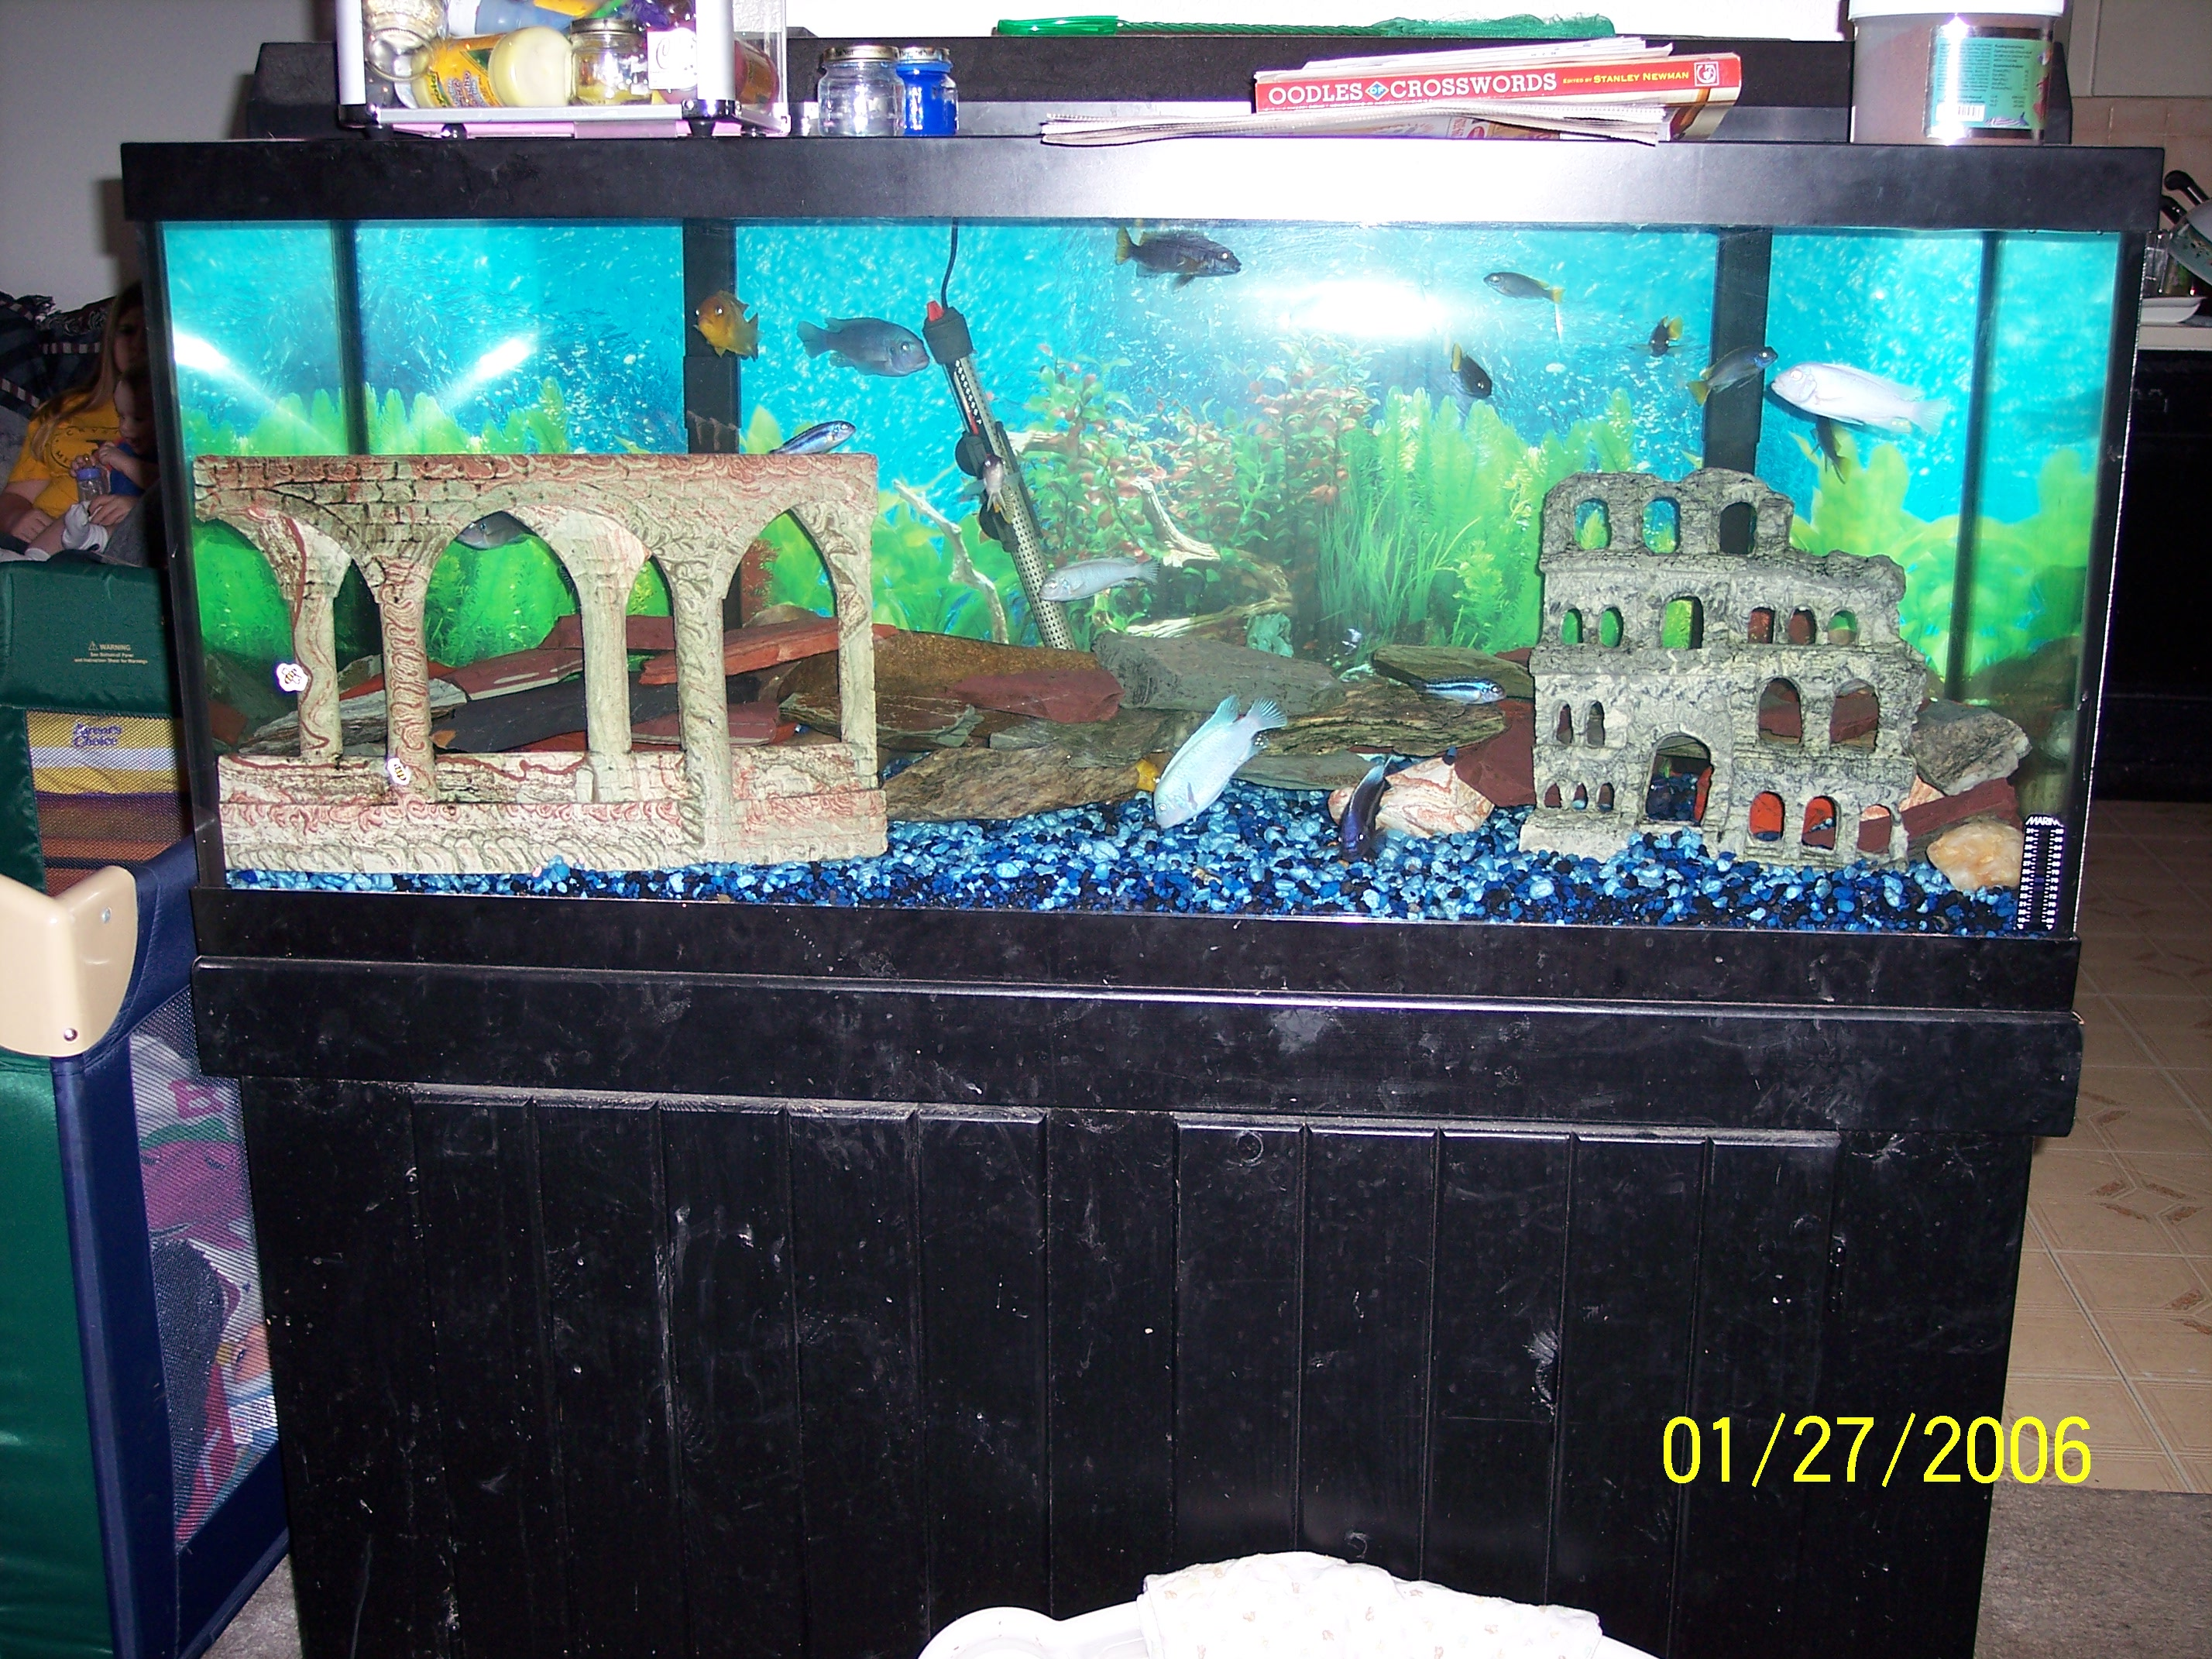 Freshwater aquarium fish crossword - 75 Gallon Malawi